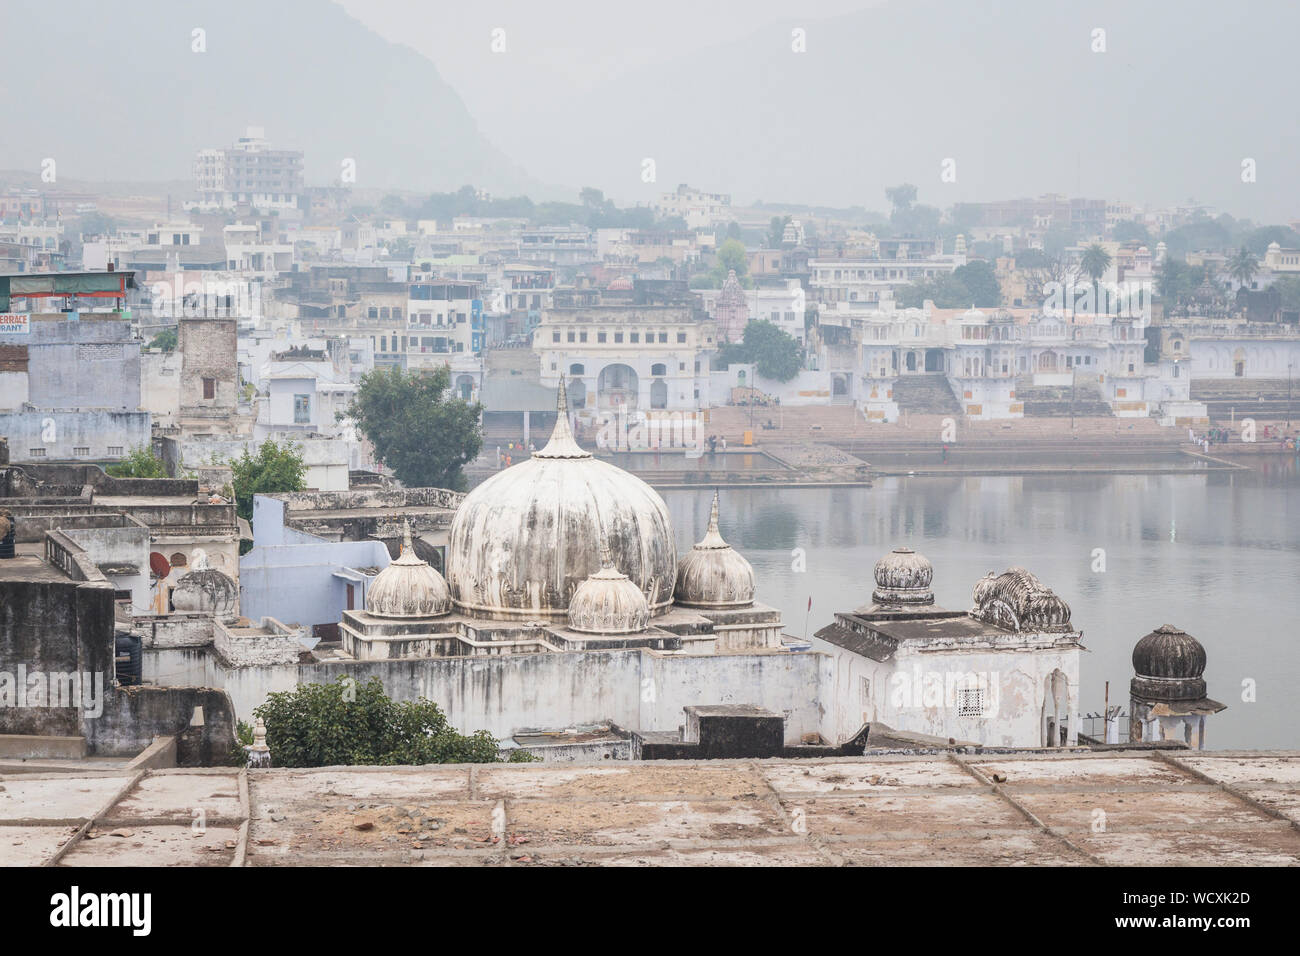 scene of Pushkar town and Pushkar lake in winter season